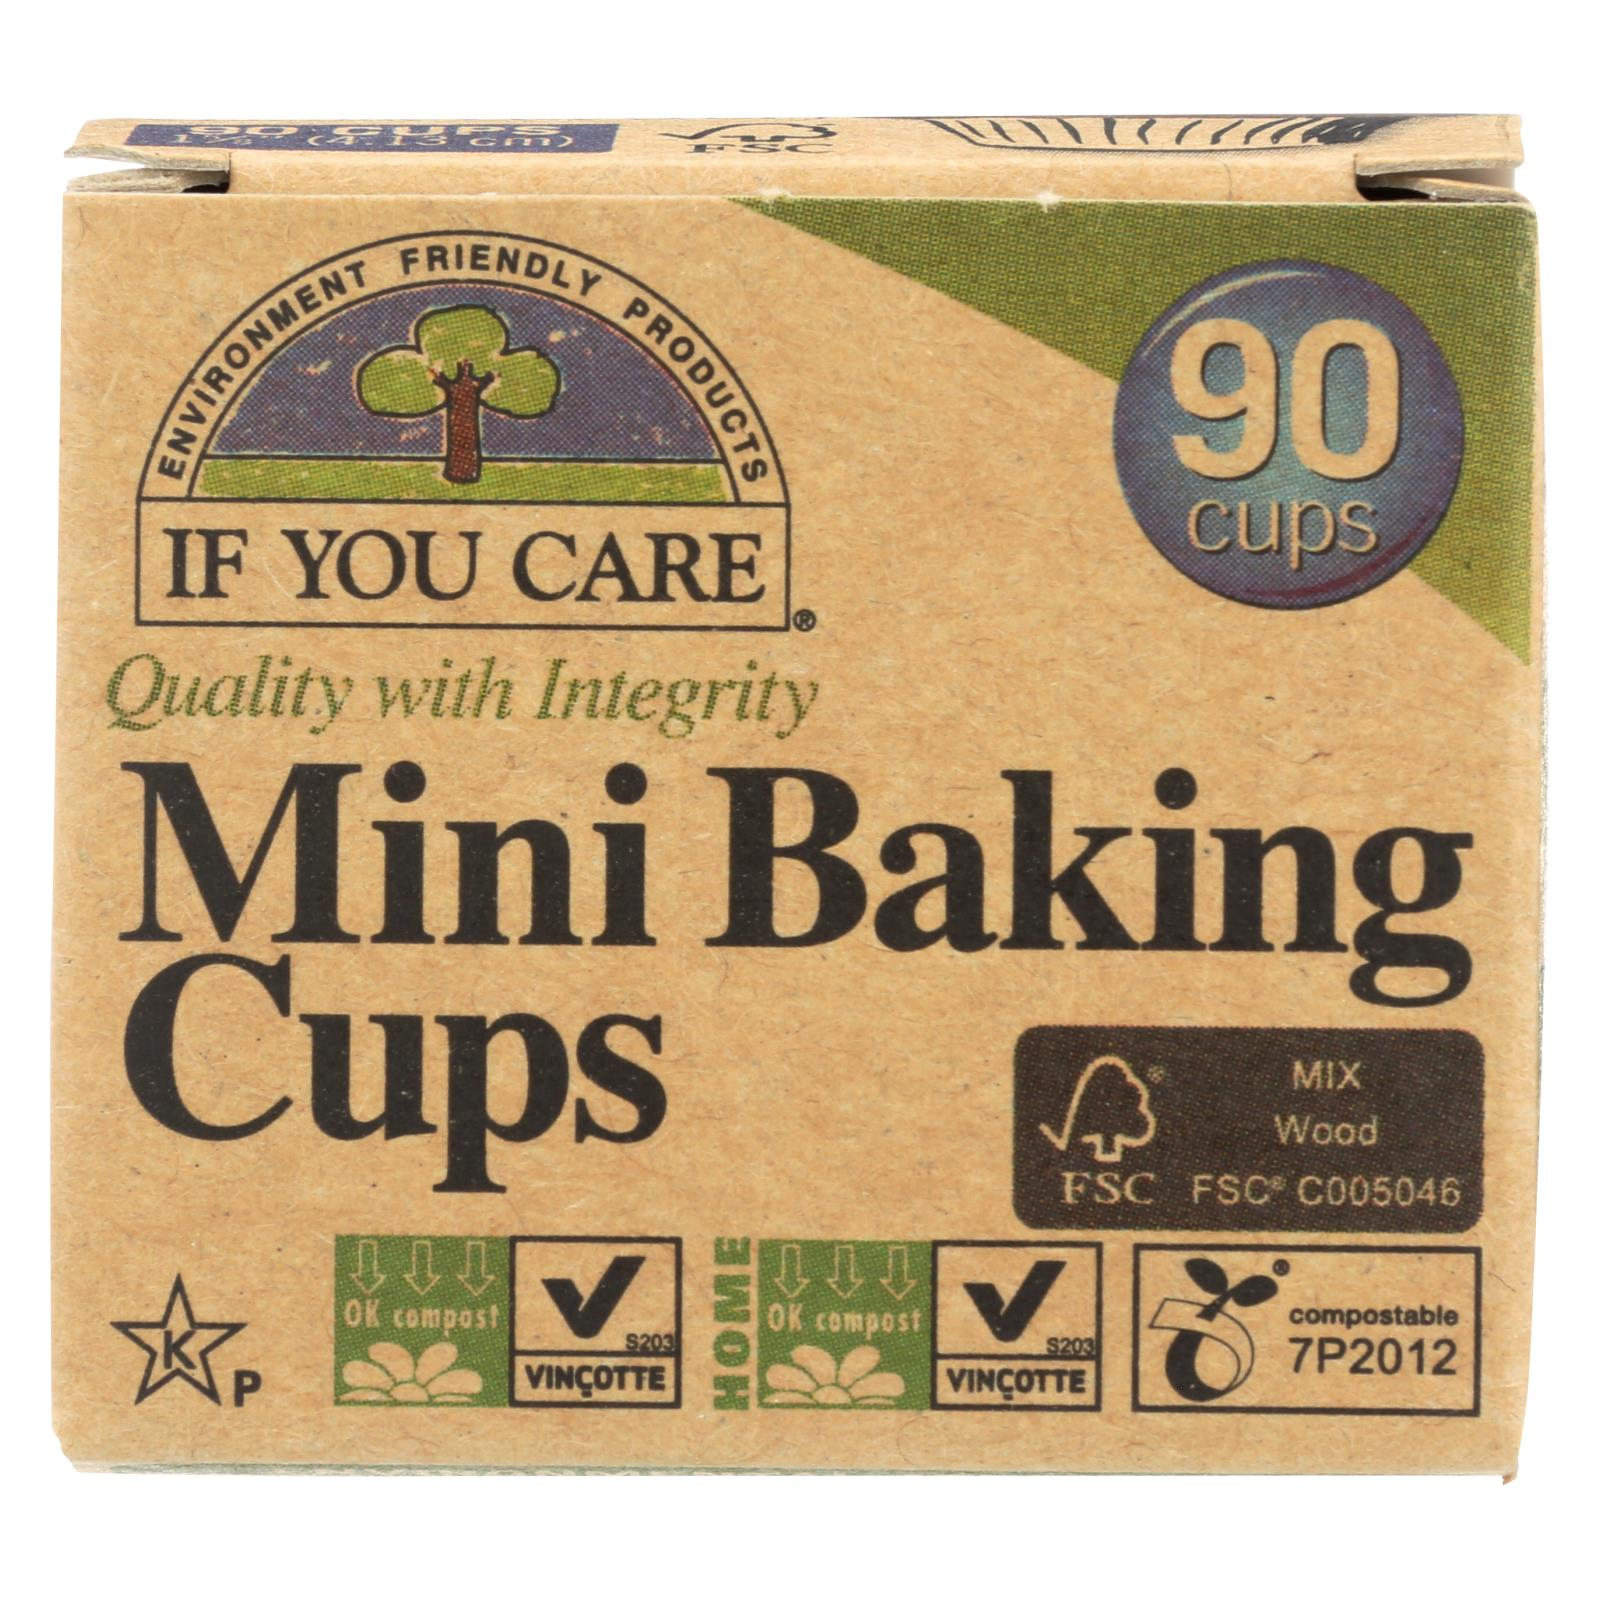 If You Care Baking Cups - Mini Cup - Case Of 24 - 90 Count HG1434497